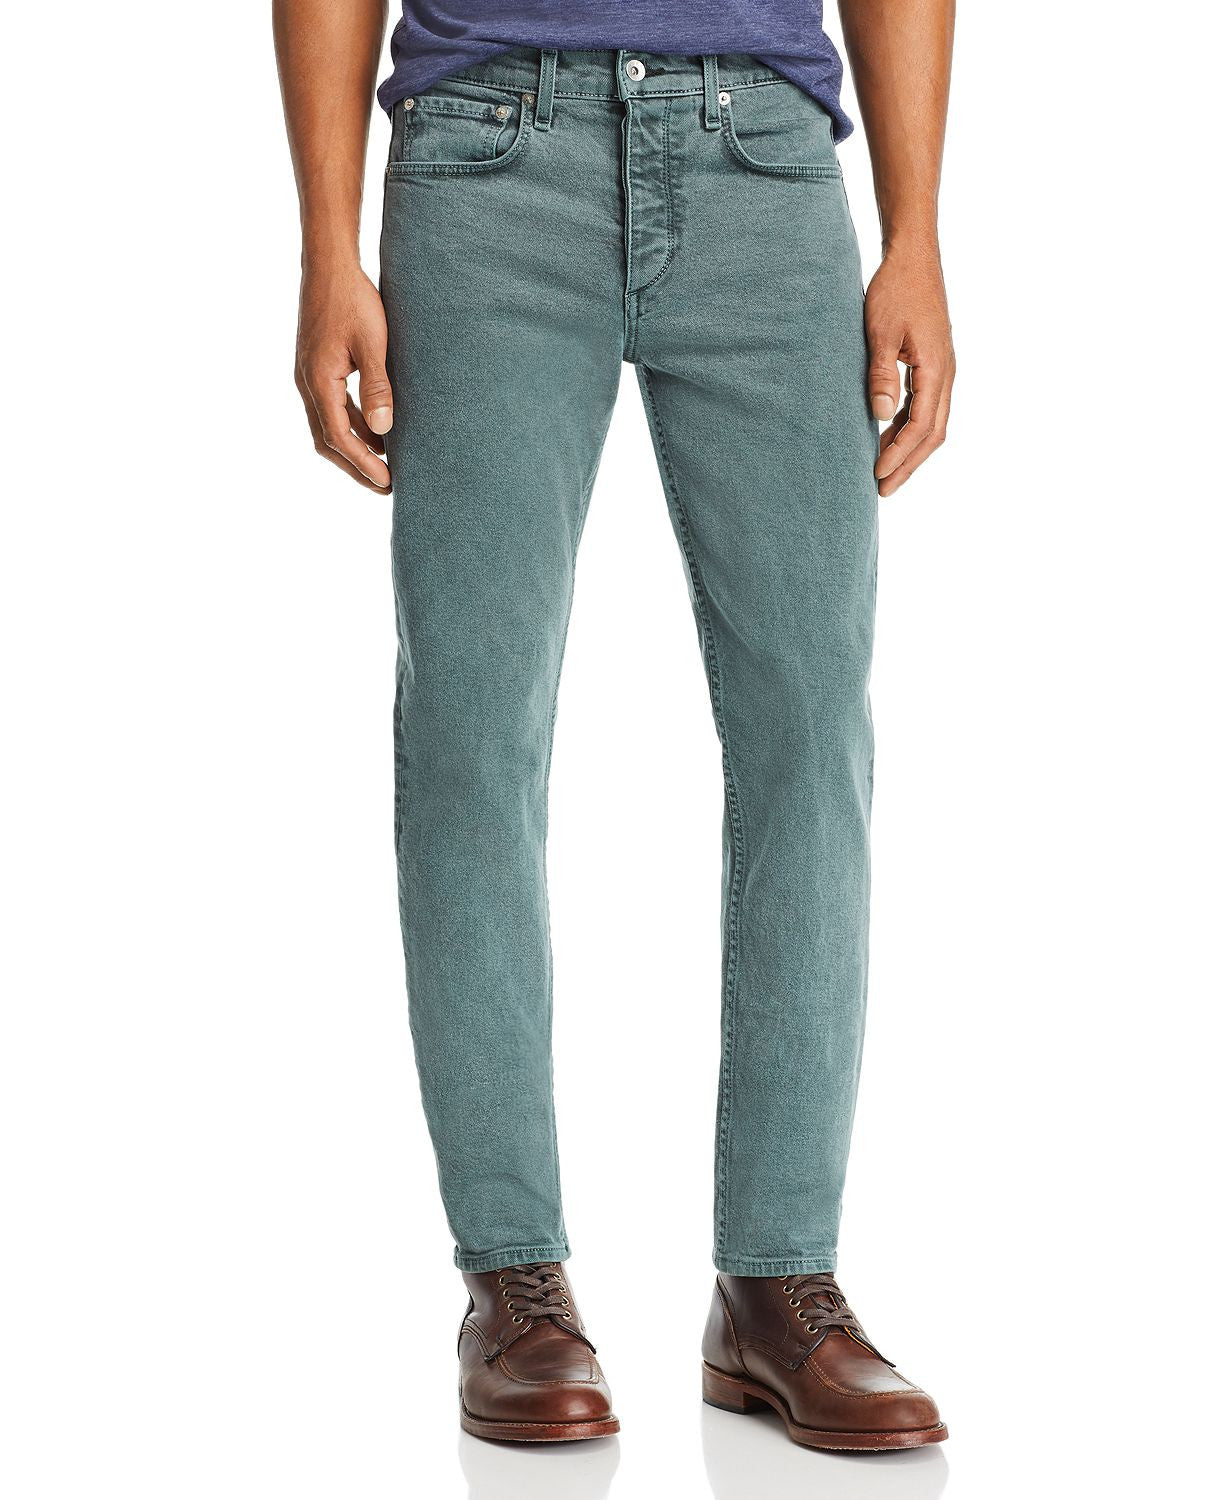 Rag & Bone Fit 2 Slim Fit Jeans In Hedlands Hedlands